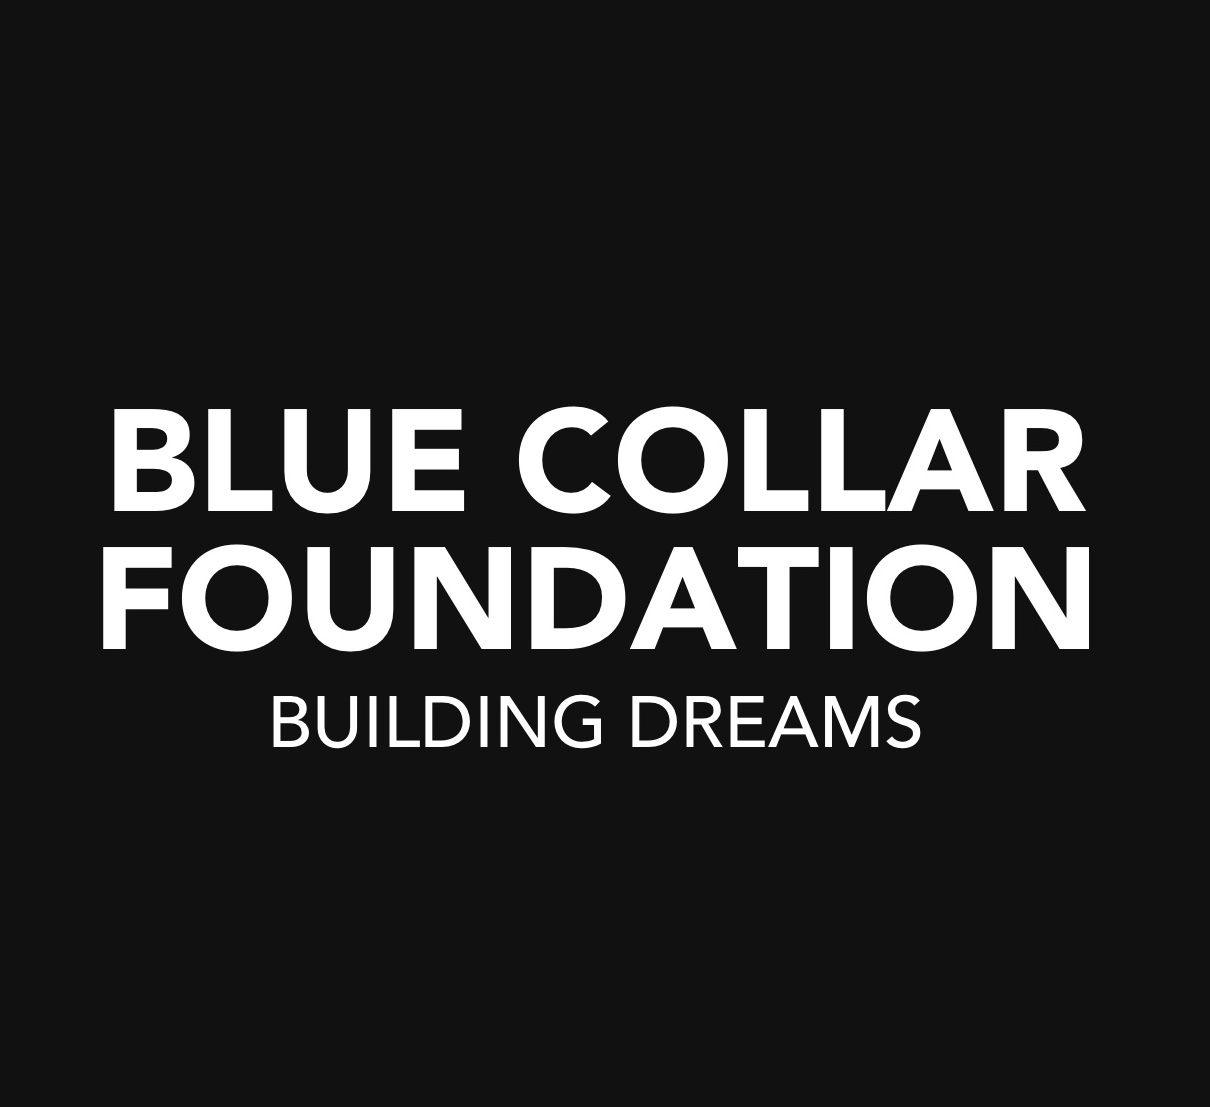 BLUE COLLAR FOUNDATION